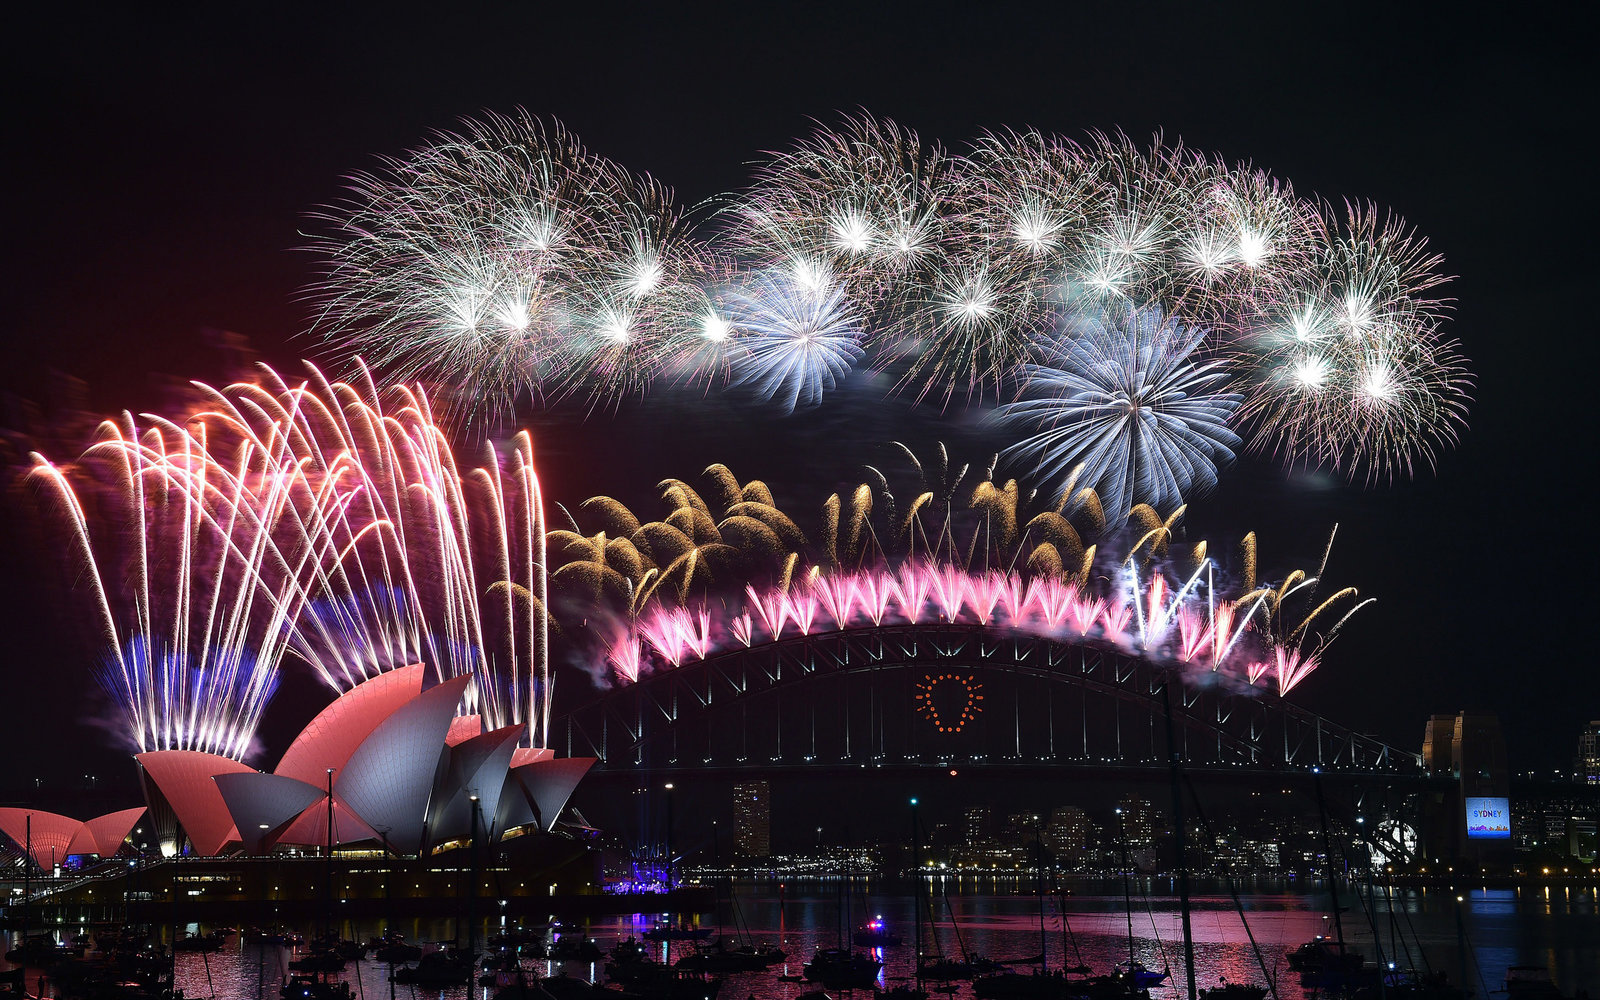 Sydney Australia New Year's Eve